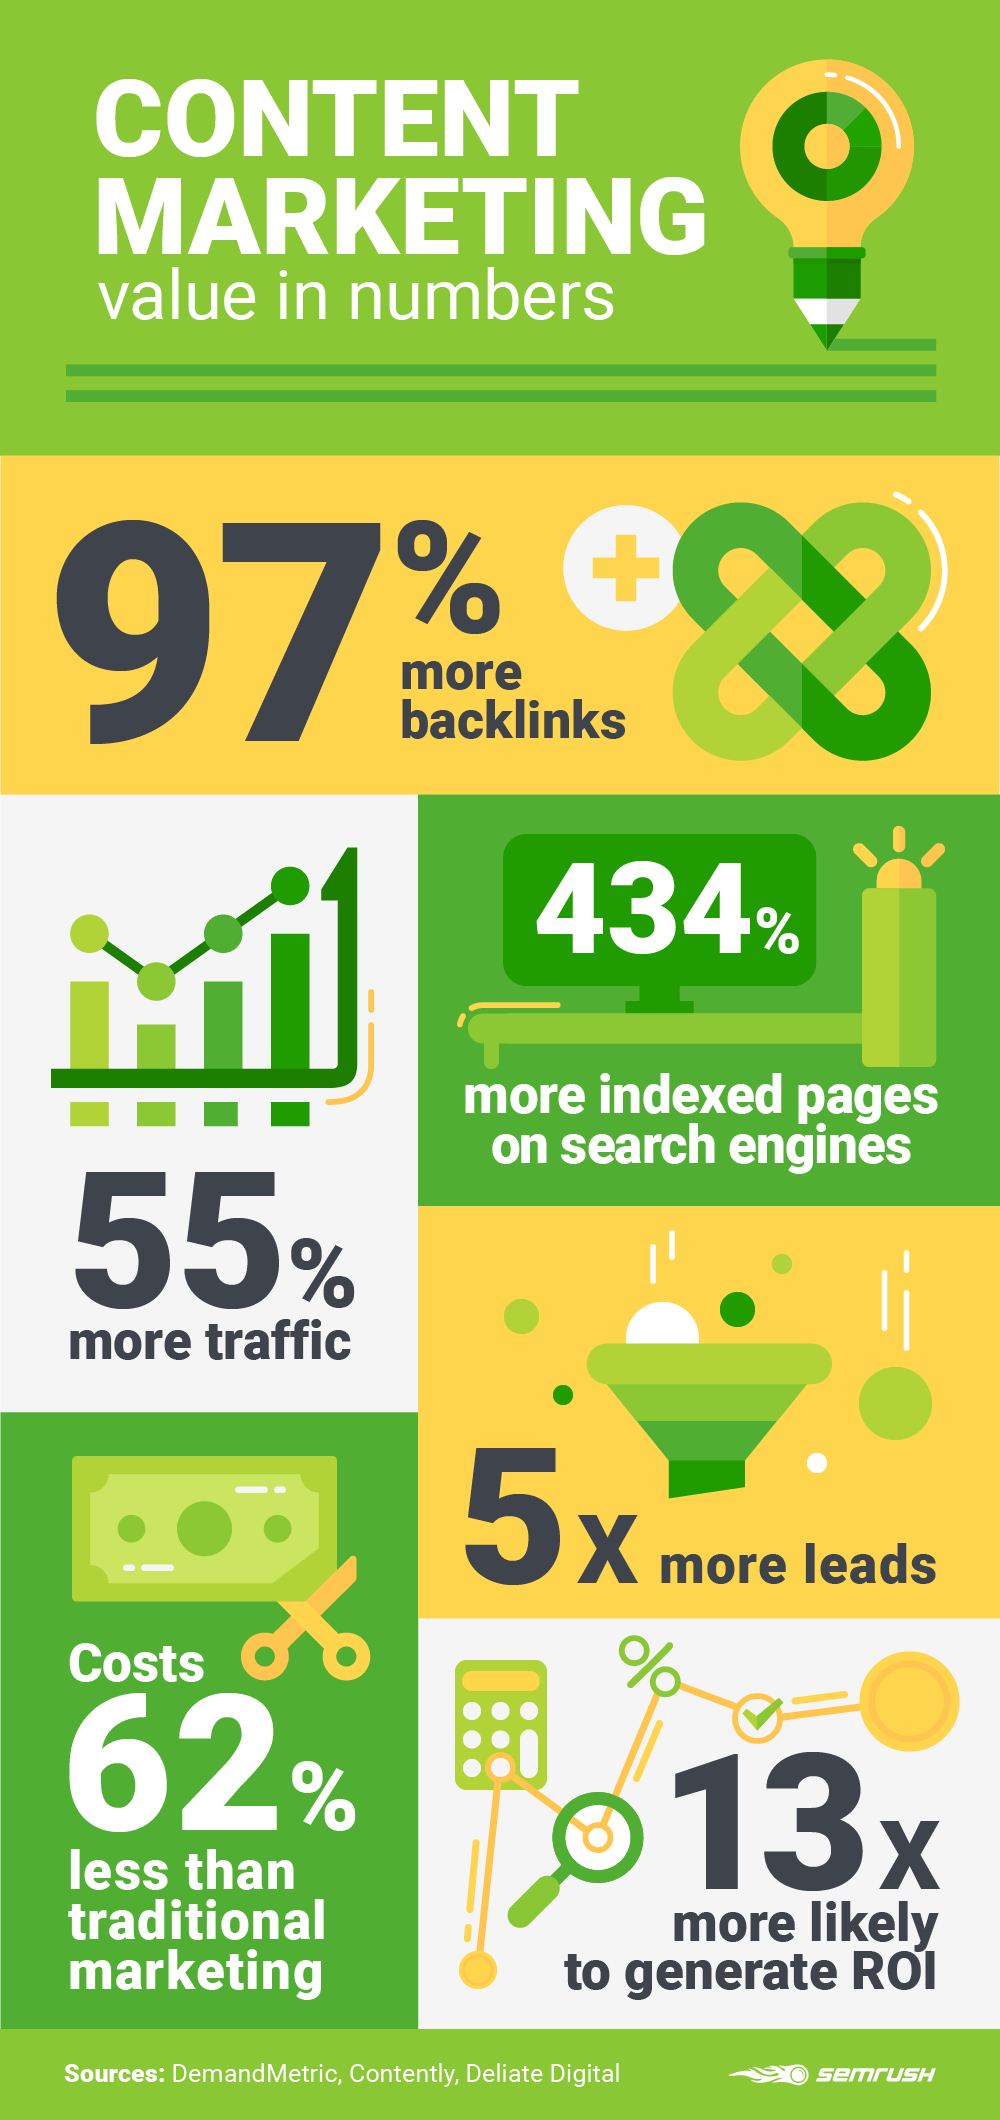 Content Marketing in stats